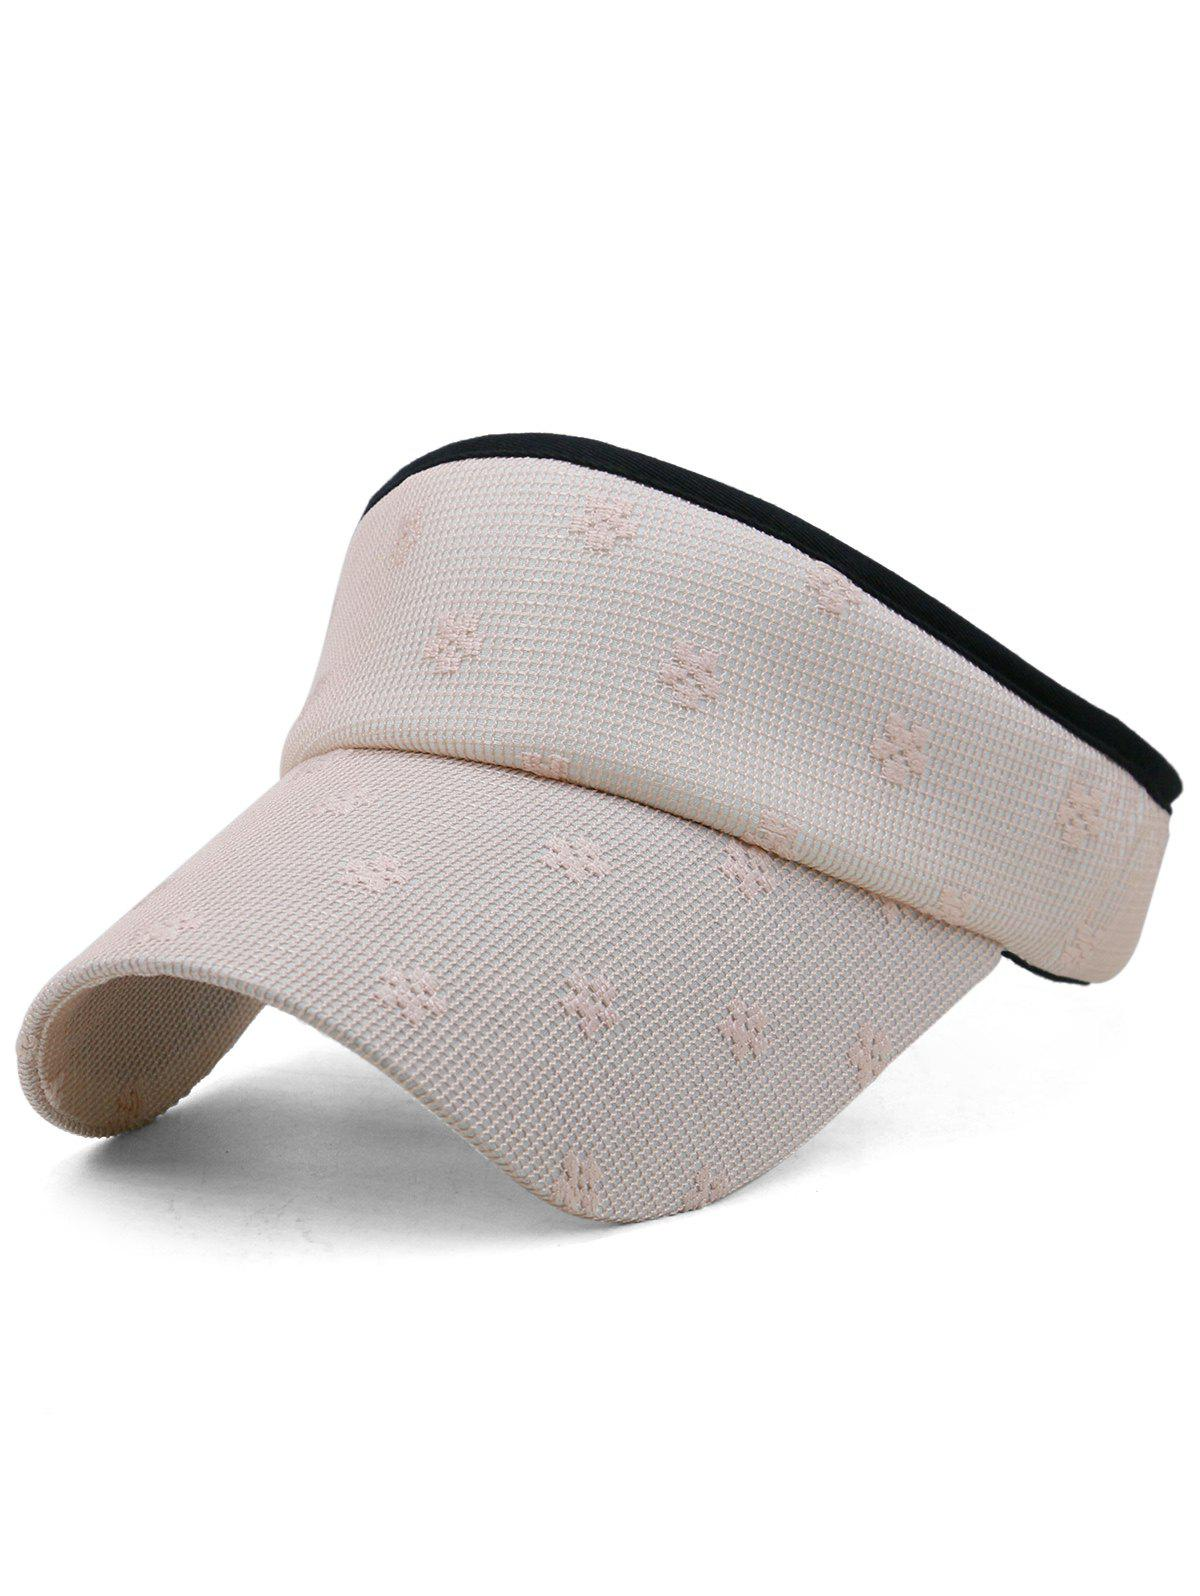 Flourishing Floral Open Top Sport Hat - LIGHT PINK